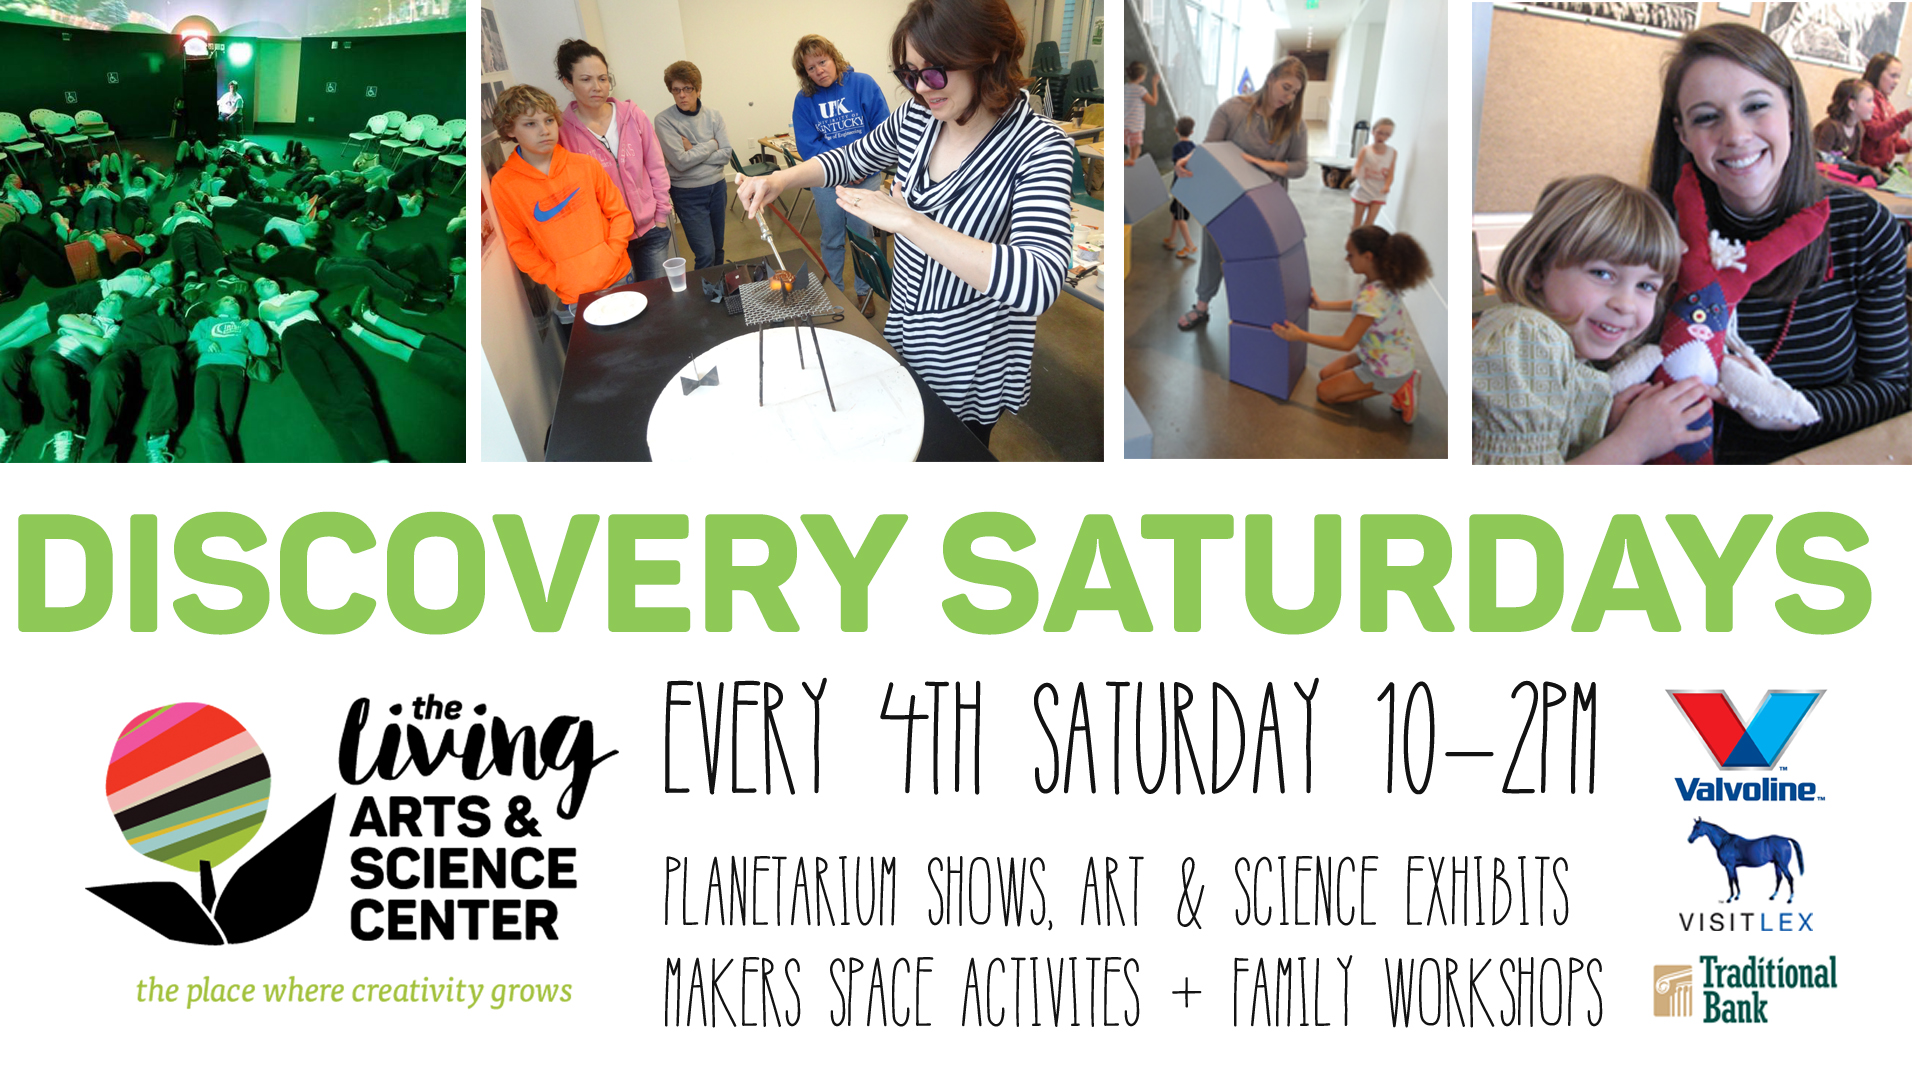 Discovery Saturday + Family Workshops